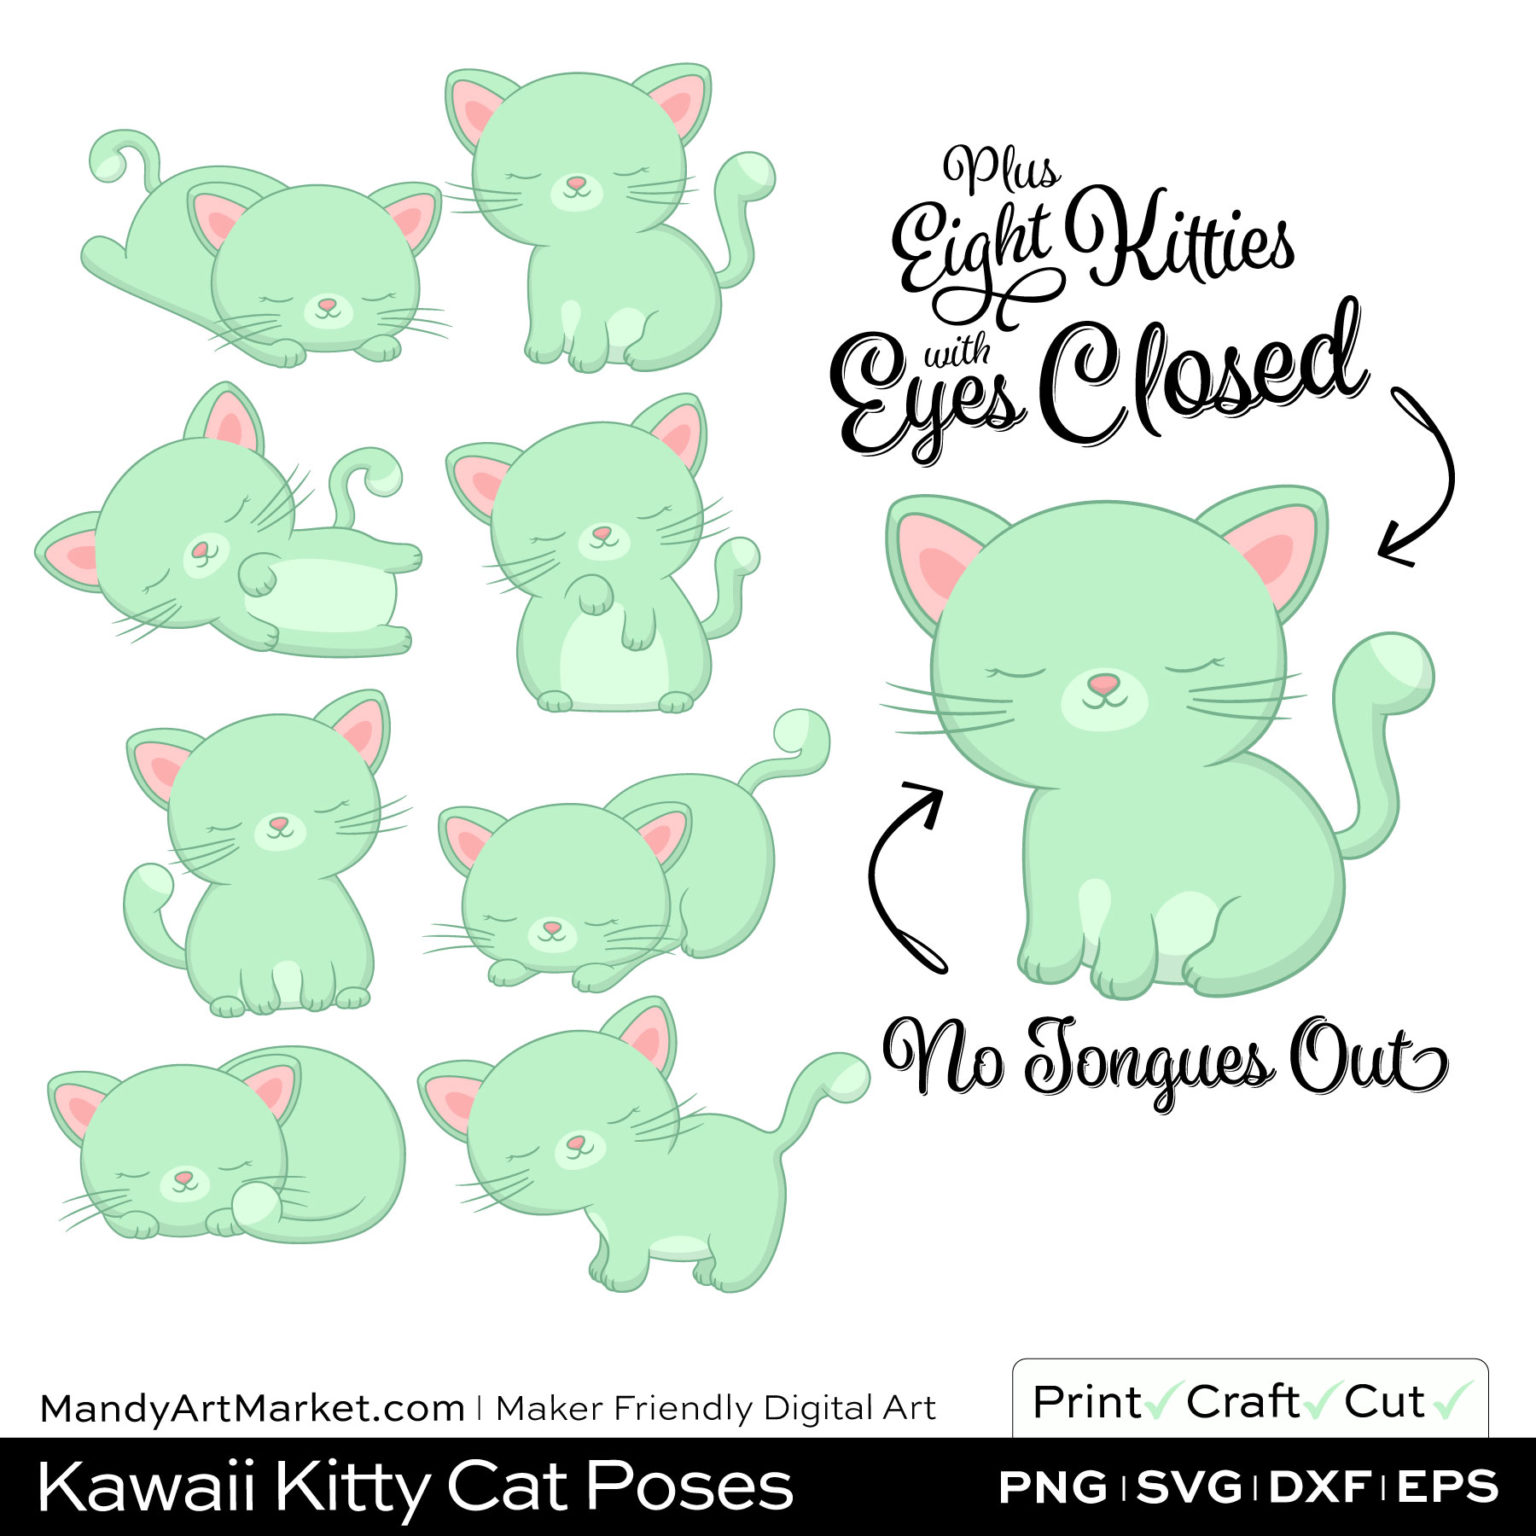 Mint Green Kawaii Kitty Cat Poses Clipart PNGs Included in Download